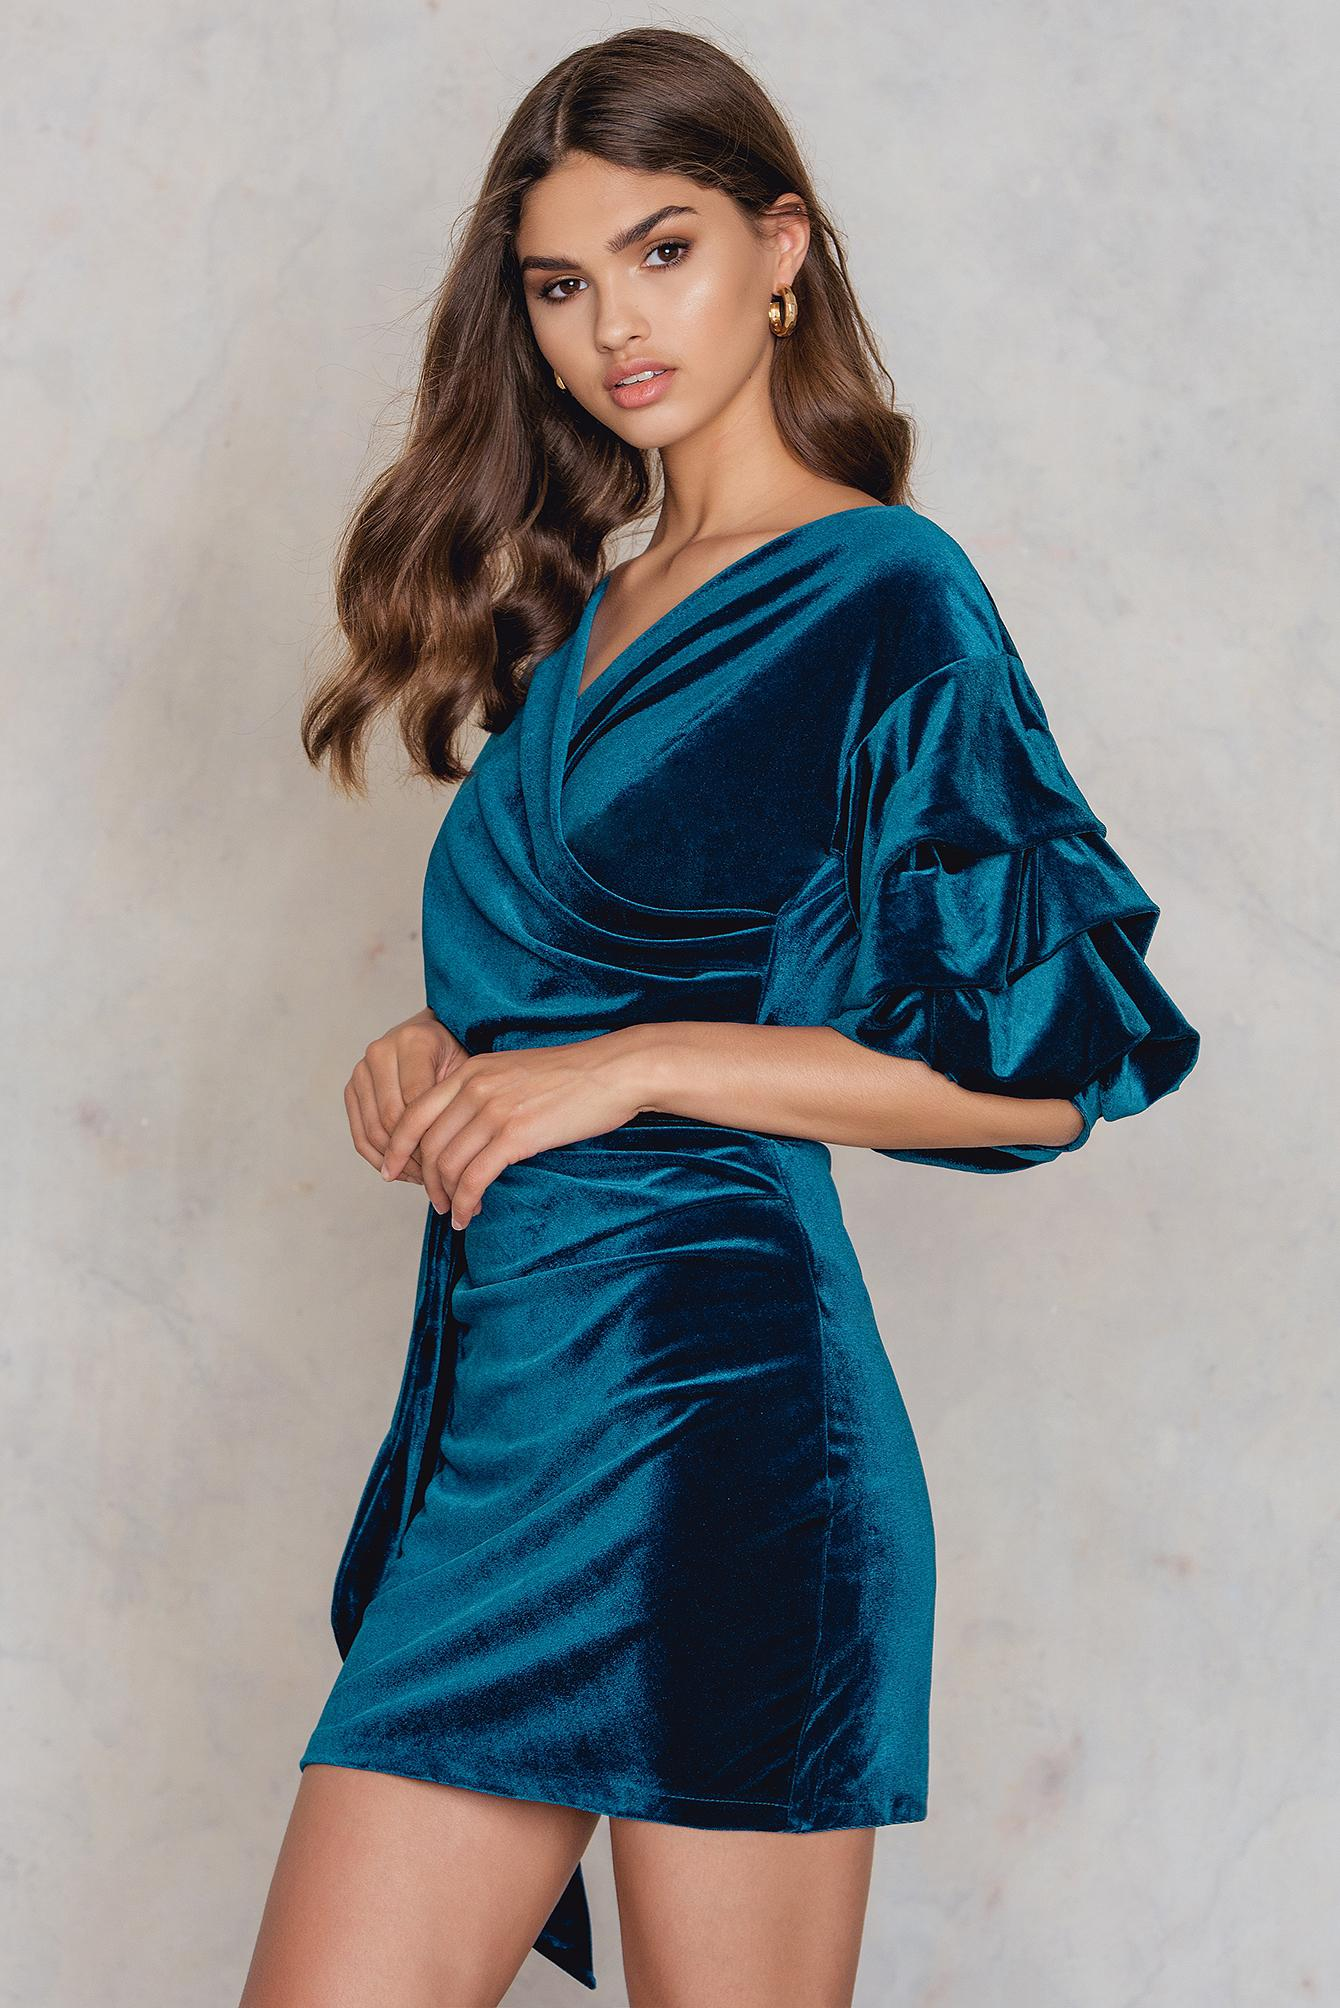 ad2dffa164 Lioness Valley Of The Dolls Dress in Blue - Lyst